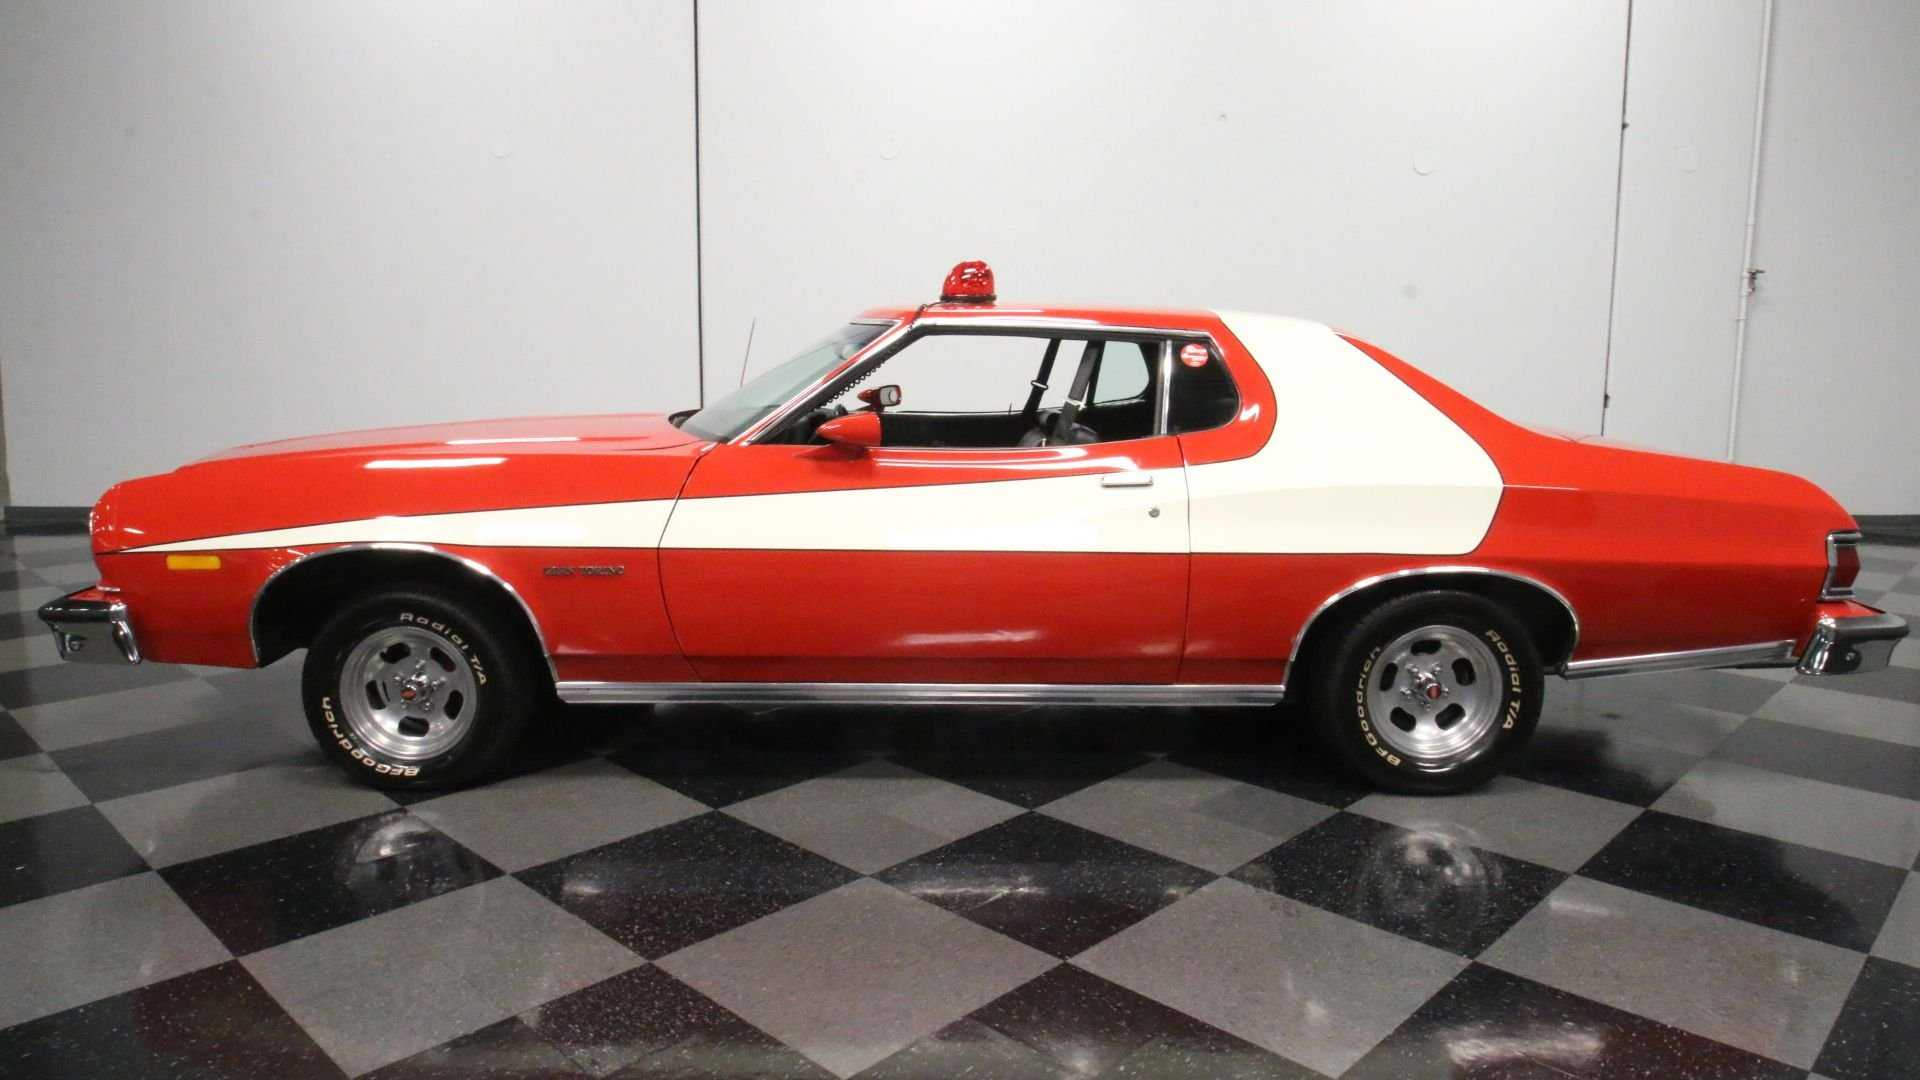 Hit The Beat In This 'Starsky & Hutch' 1976 Ford Gran Torino